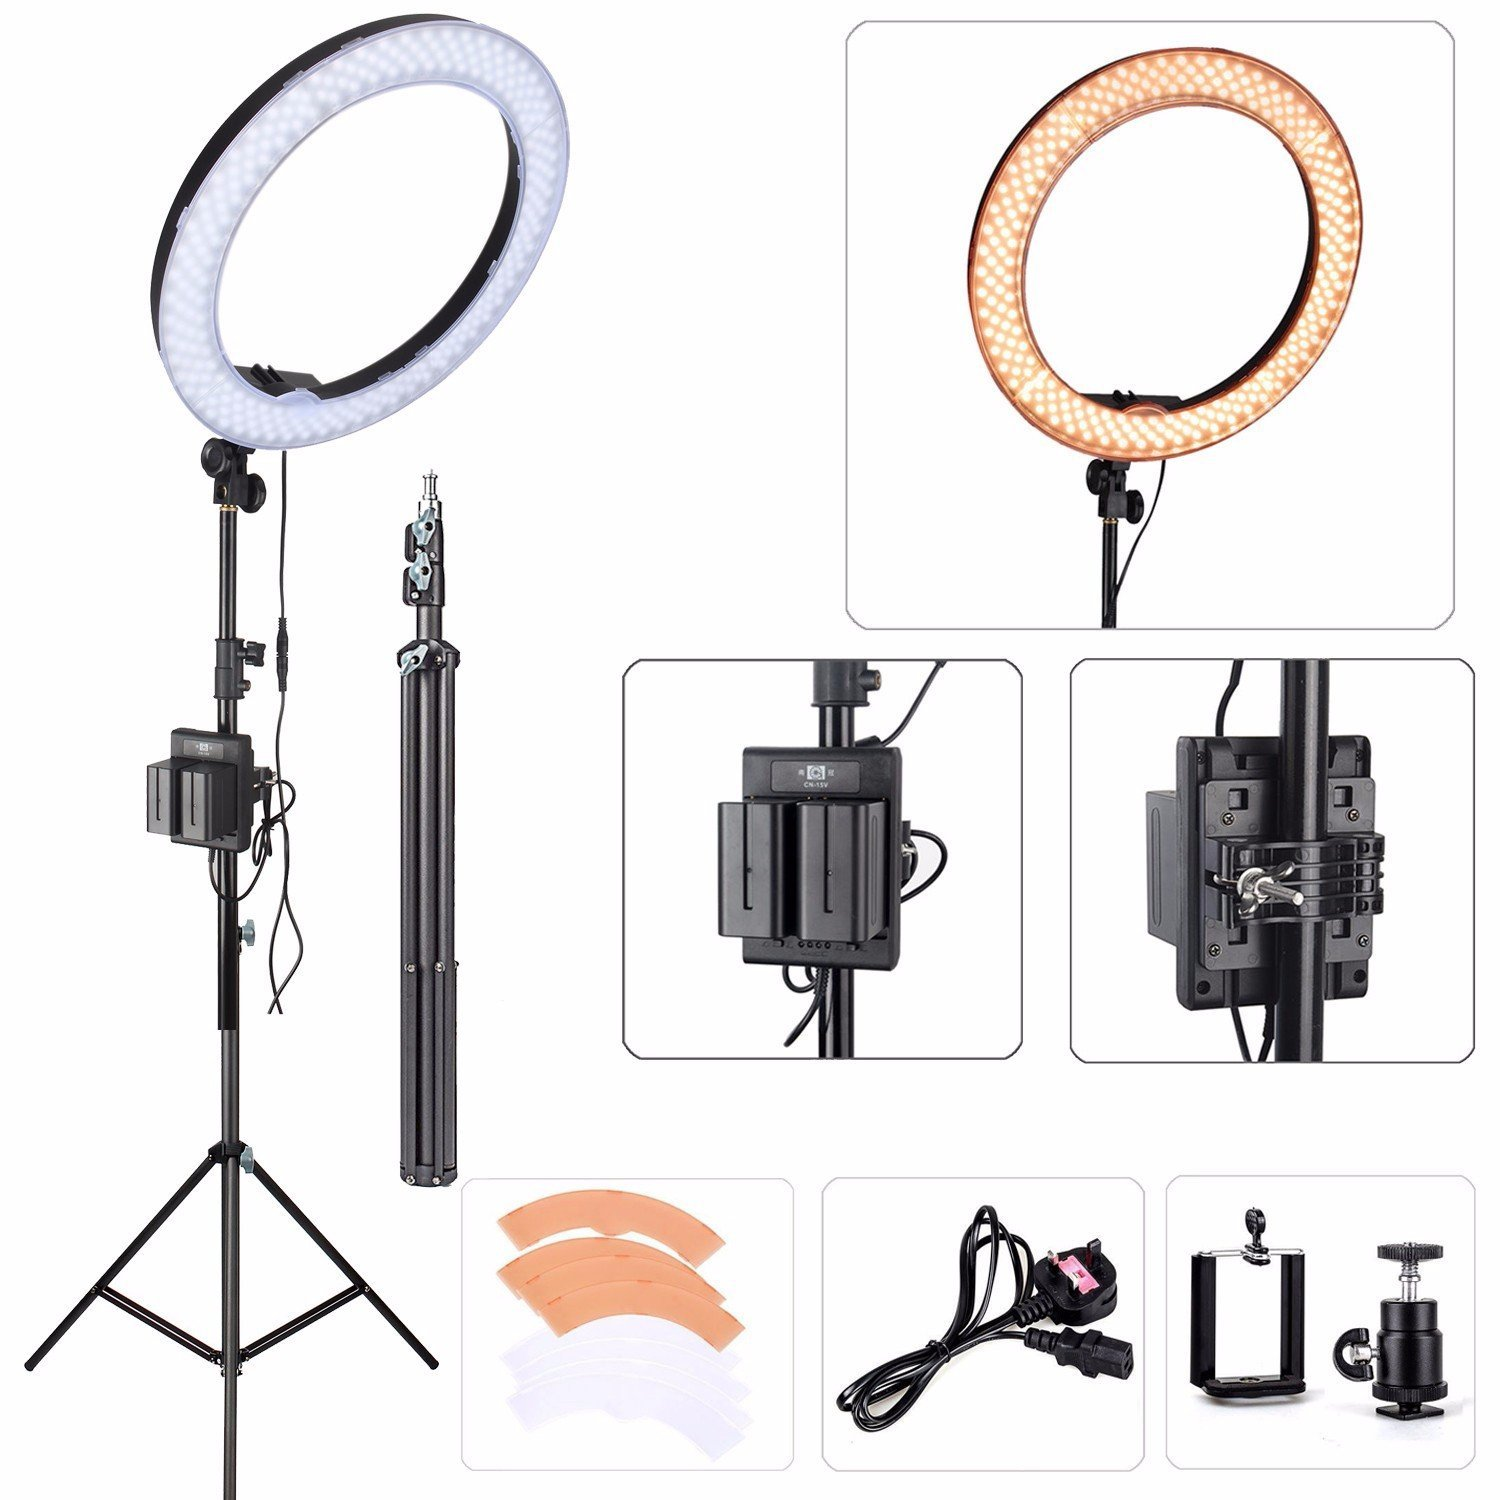 """EACHSHOT ES240 Kit, {Including Light, Stand, Portable Power Supply, Phone Clamp, Tripod Head }240 LED 18"""" Stepless Adjustable Ring Light Camera Photo/Video Portrait photography 180pcs LED 5500K Dimmab"""